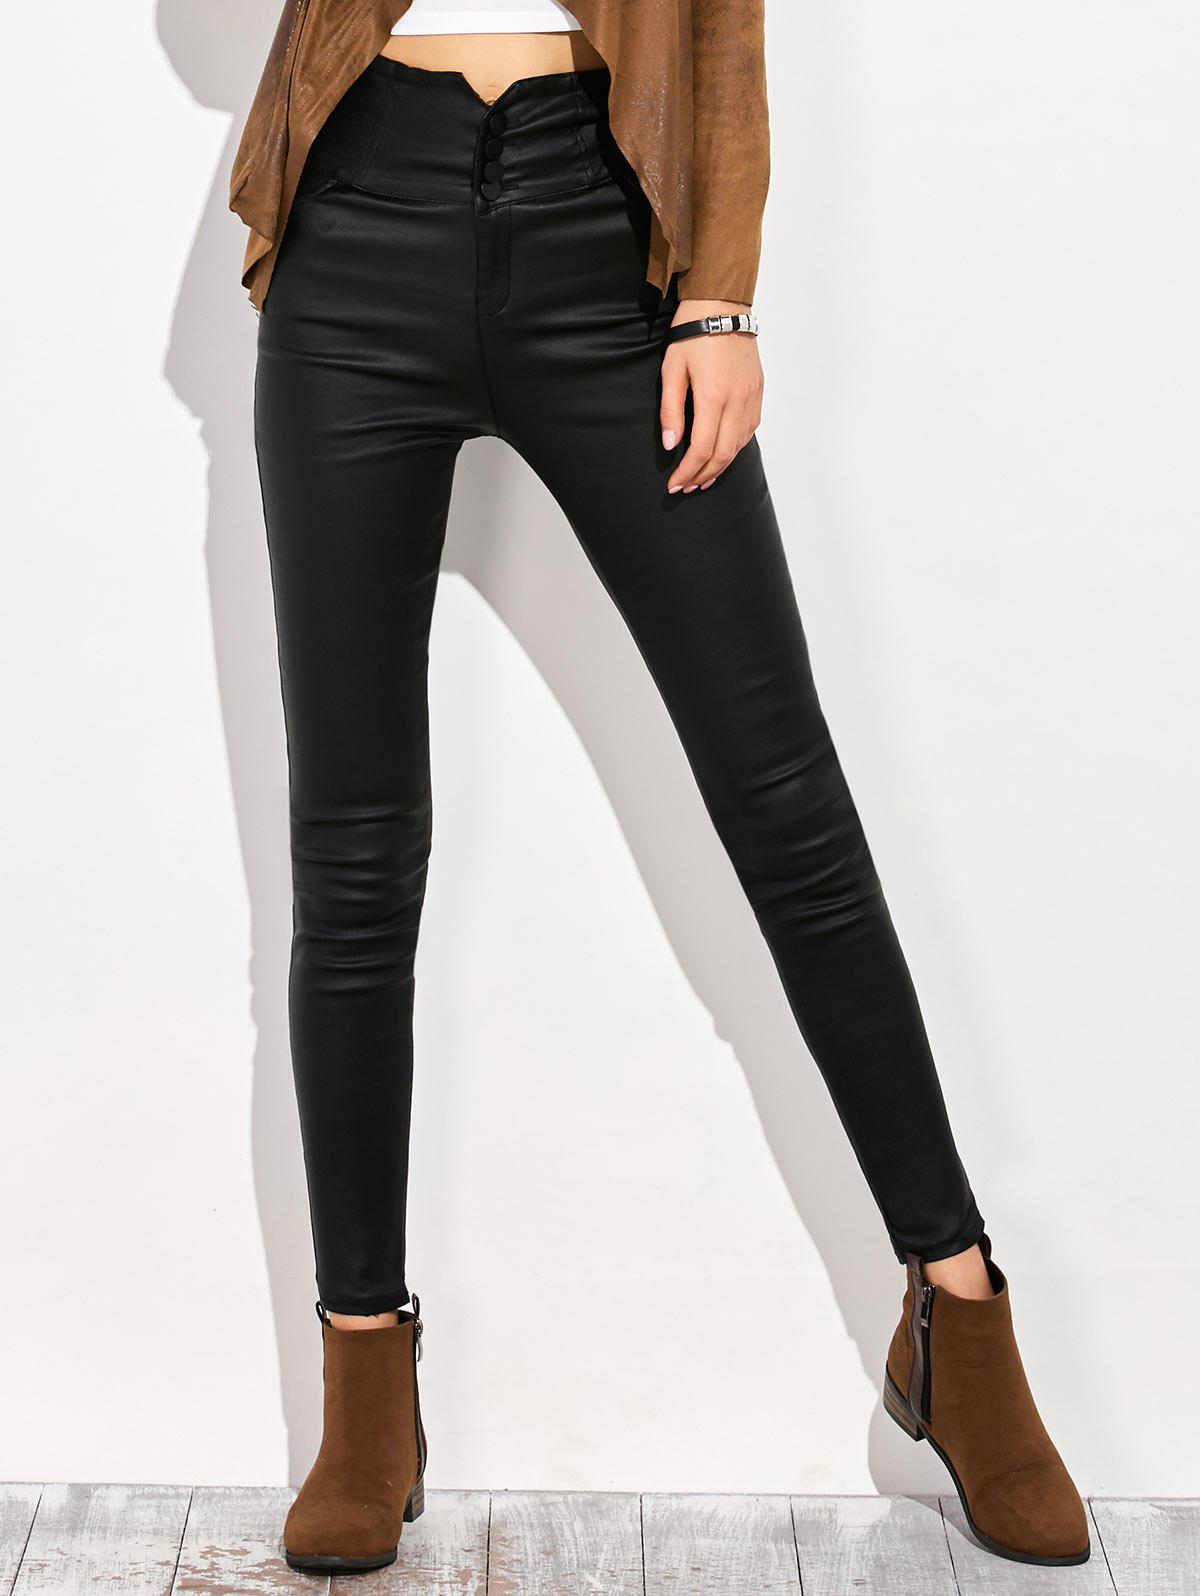 Criss Cross High Waist Skinny Pencil Pants - BLACK M